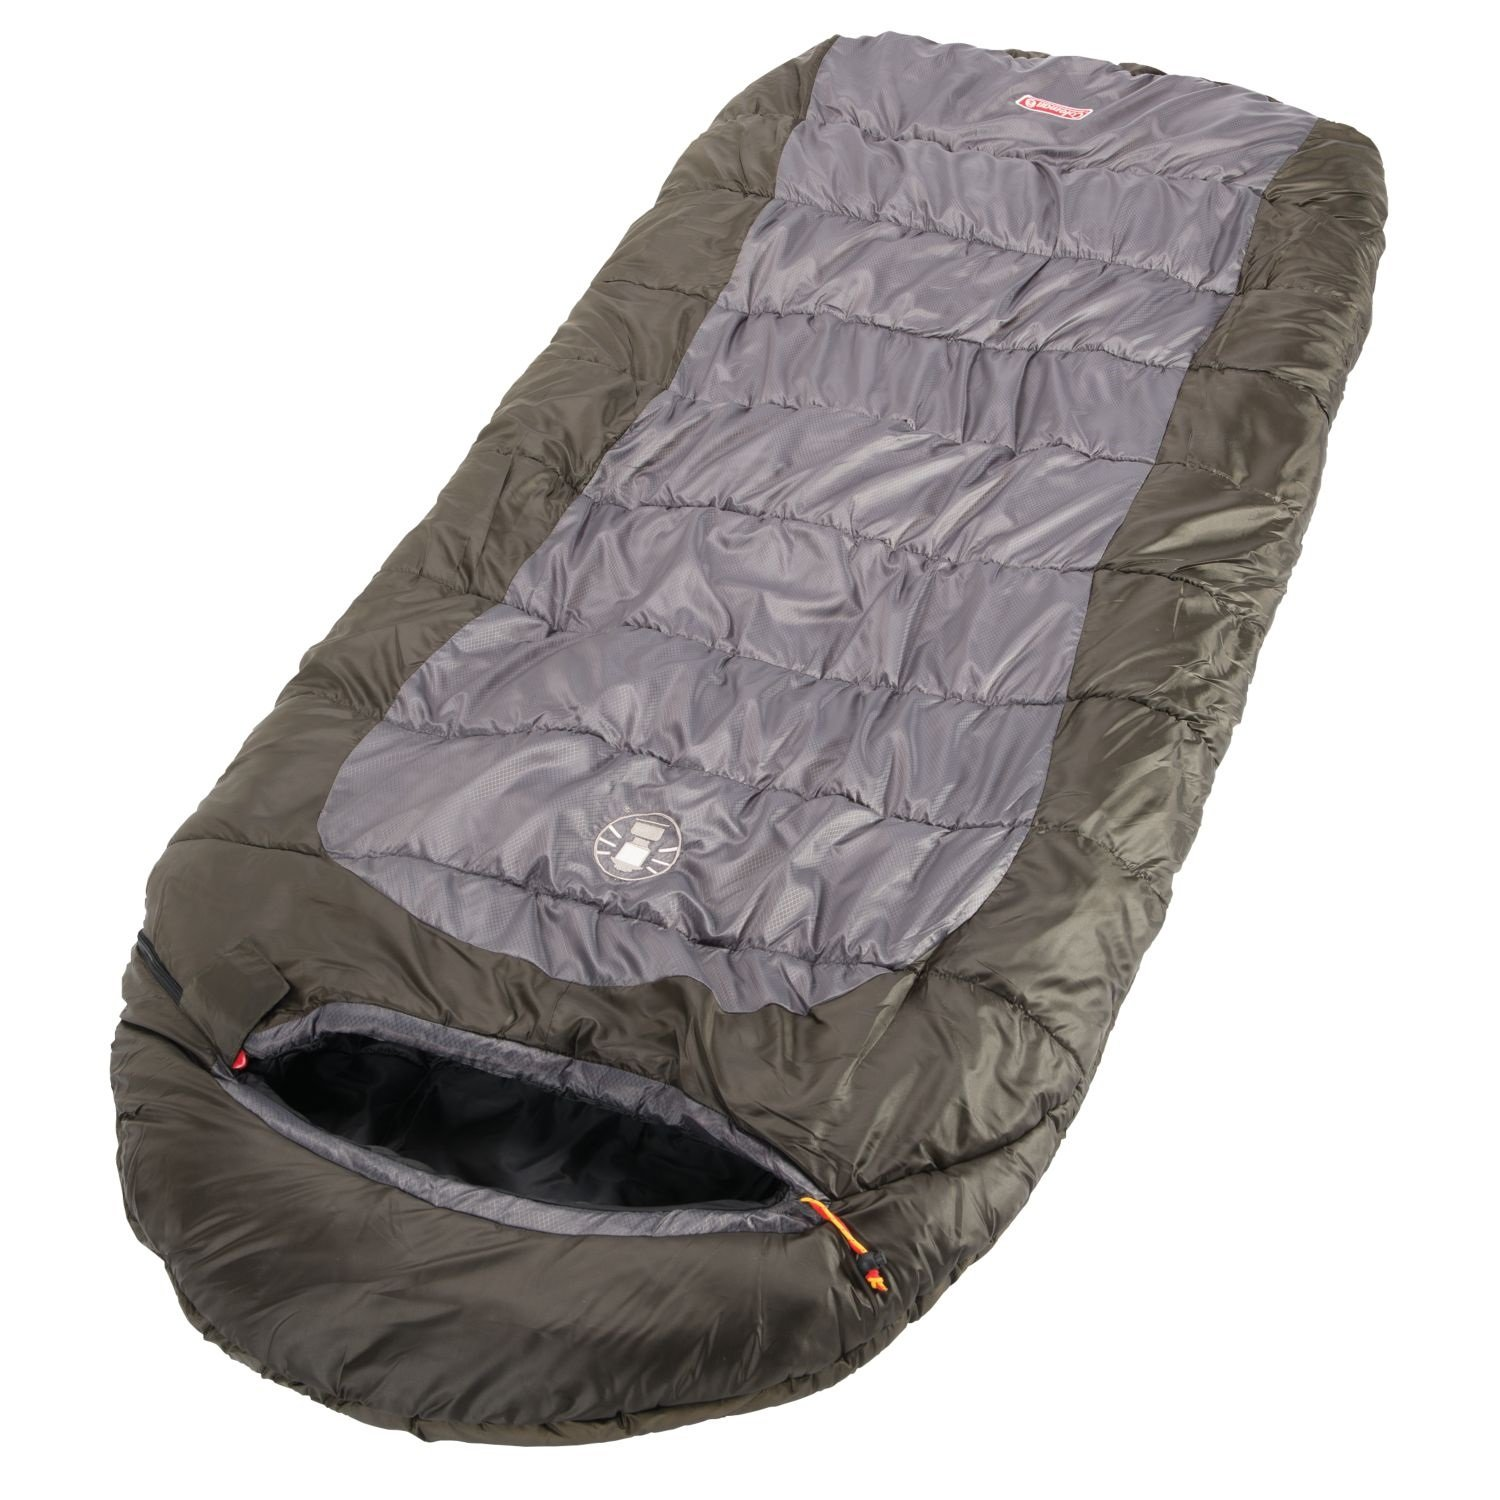 Extra Large Sleeping Bags For Big And Tall People | For ...